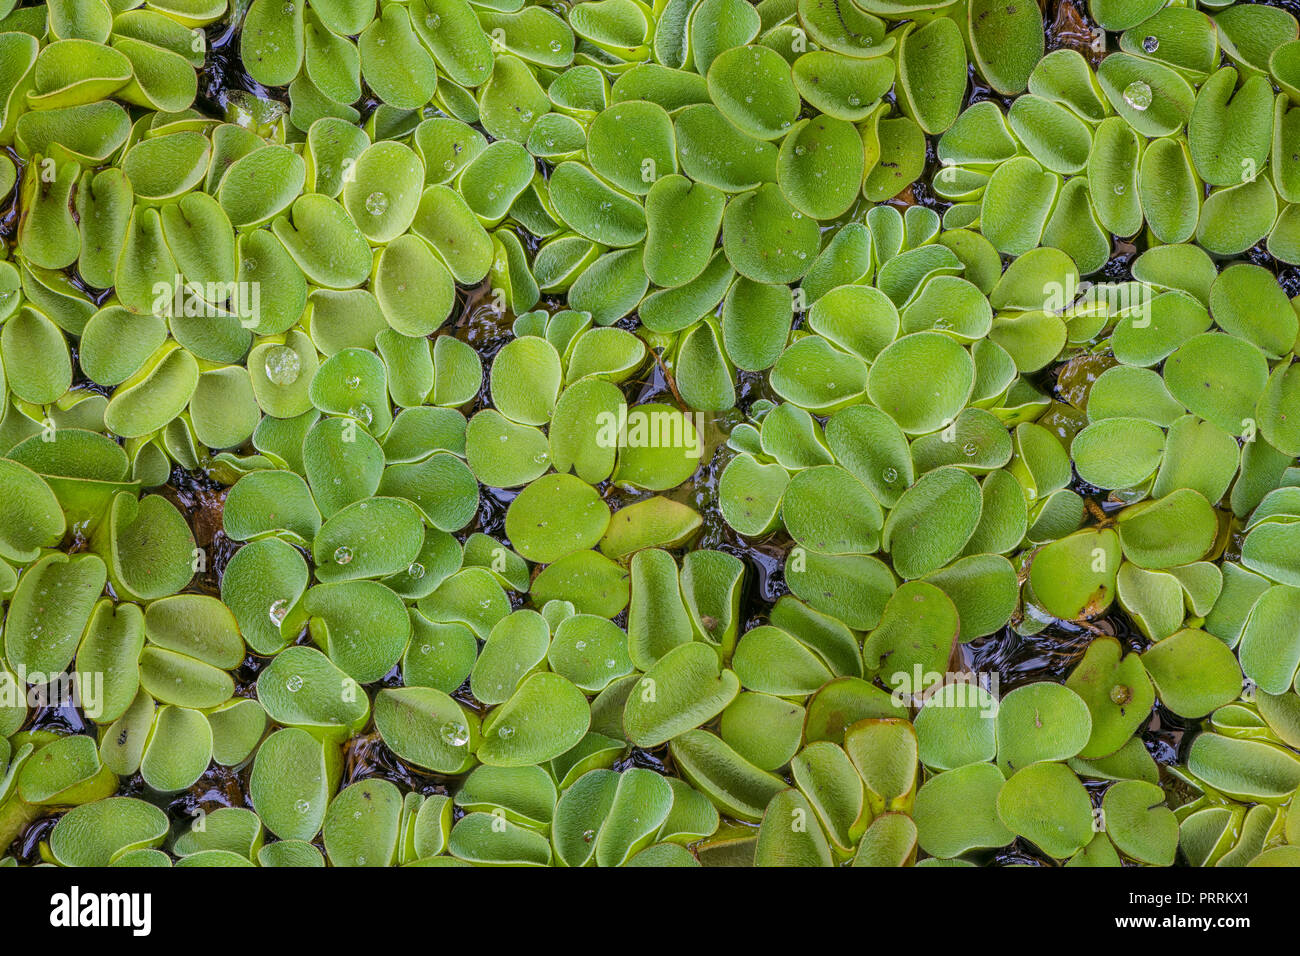 Salvinia watermoss using focus stacking technique for background or pattern - Stock Image